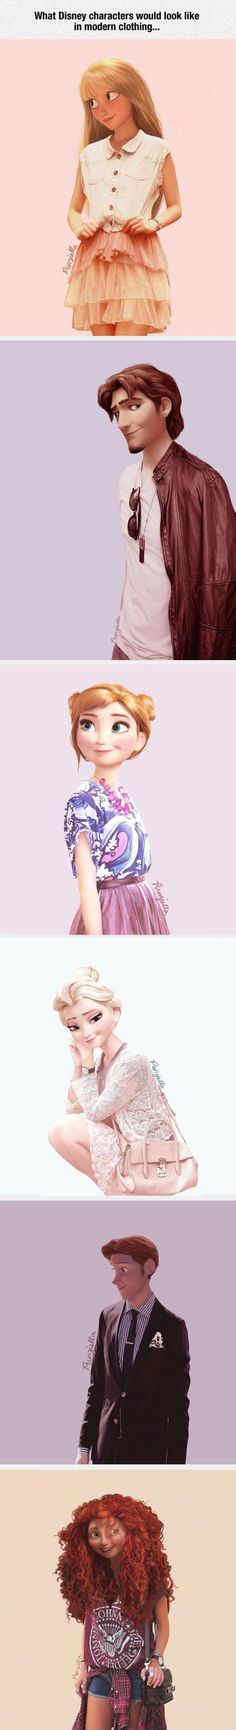 What Disney characters would look like in everyday clothing. Wonderful :3